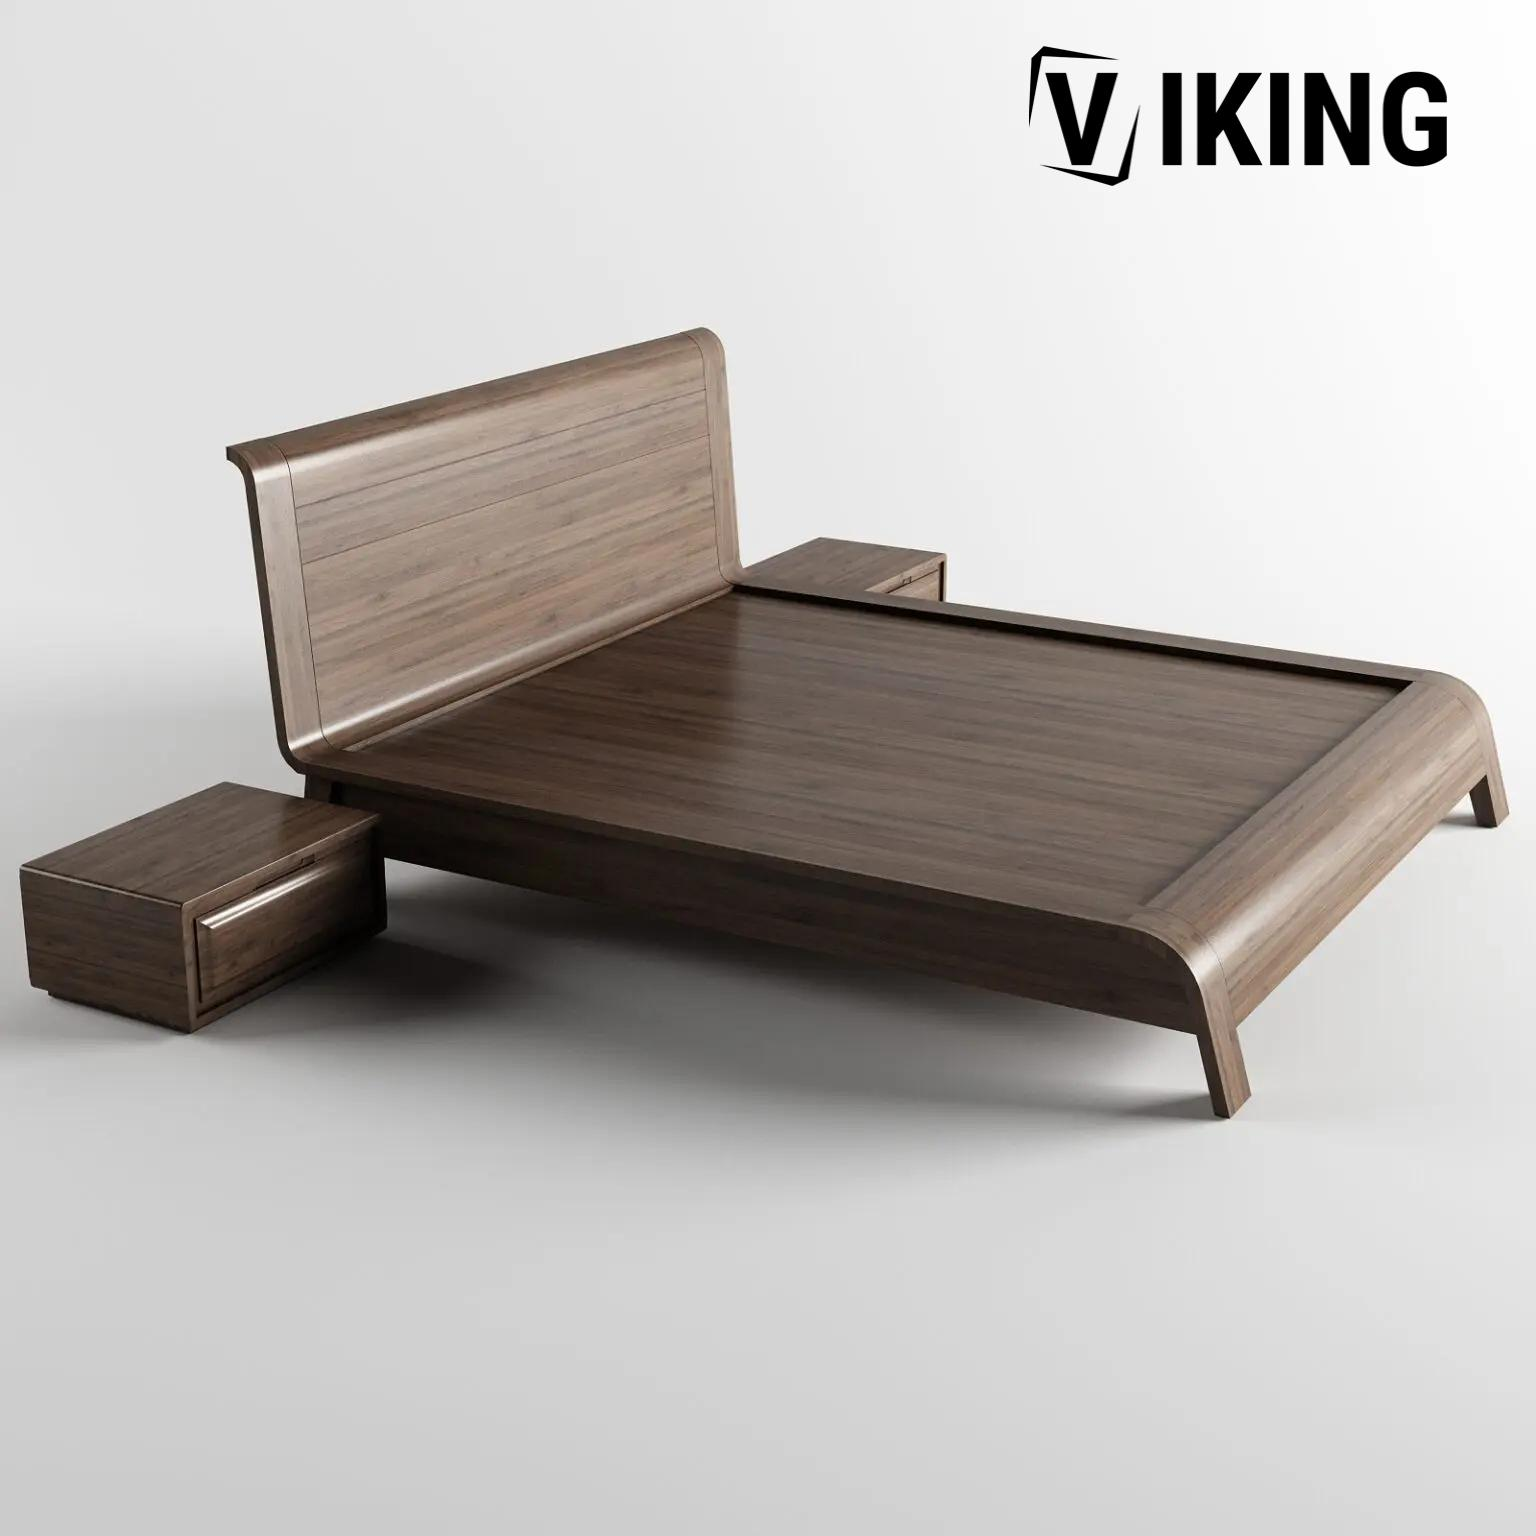 3D Bed Model 222 By Huy Hieu Lee 1 1536x1536 1